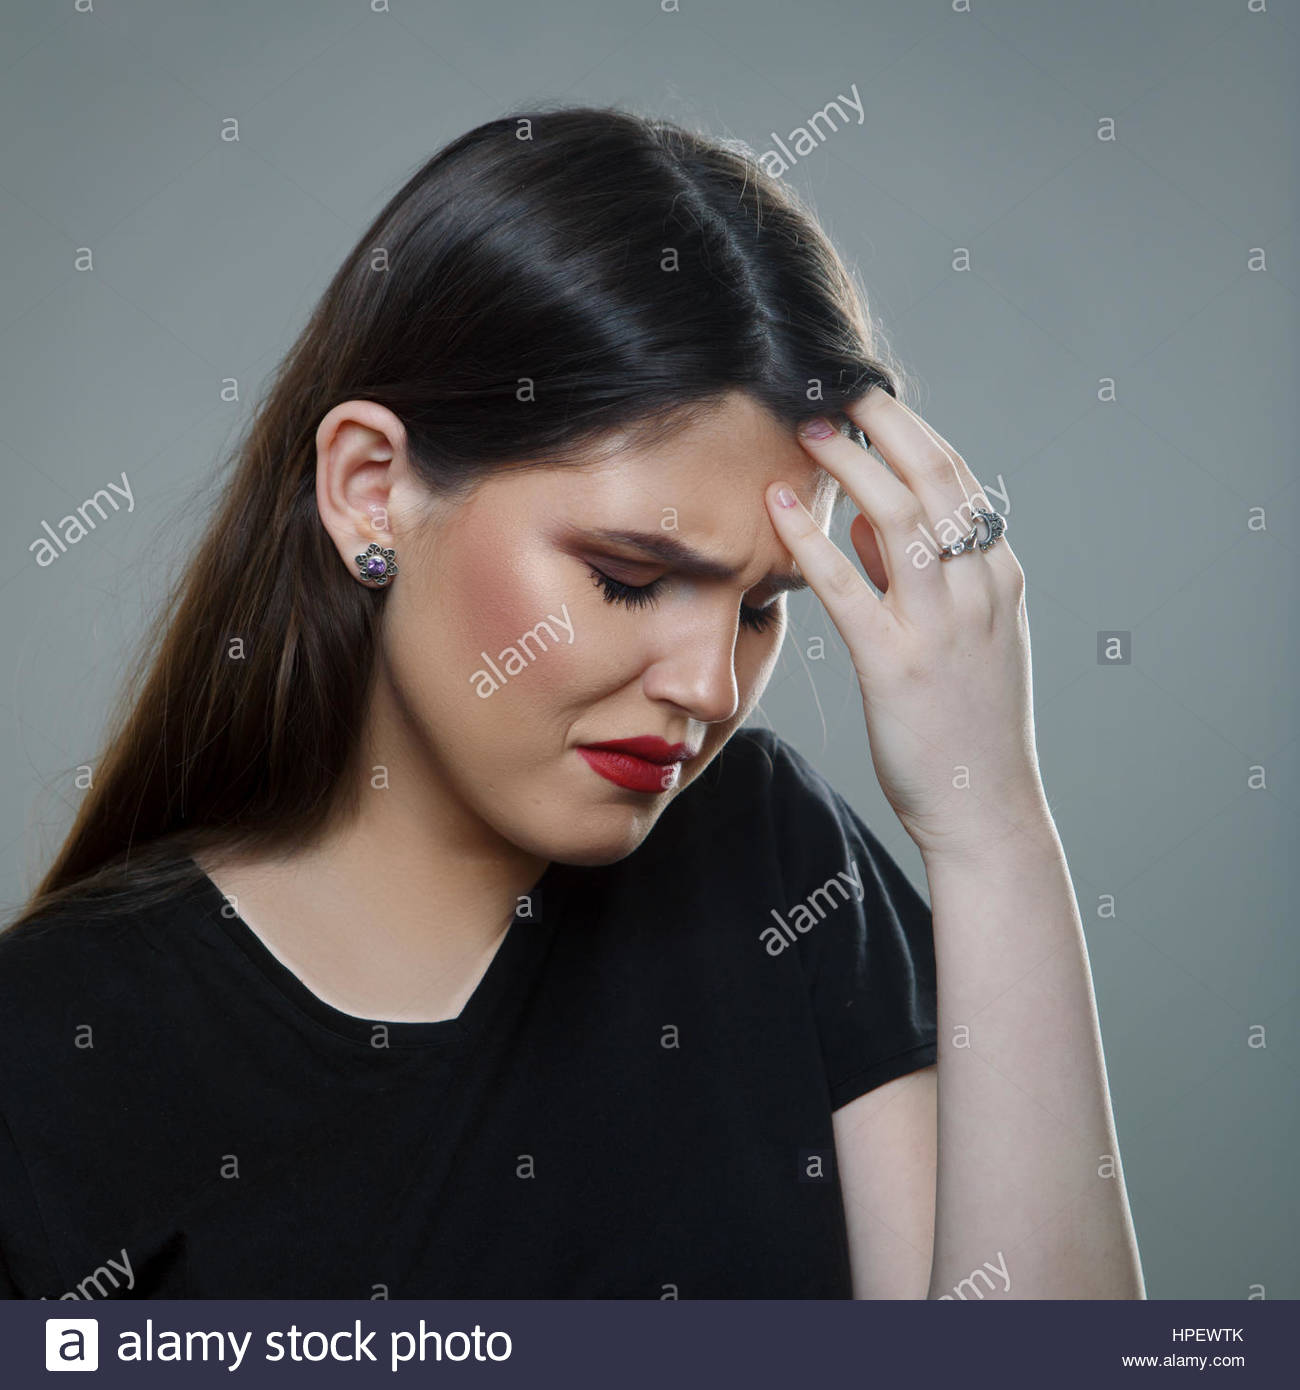 Headache Female. Stressed Young Woman Having Migraines - Stock Image